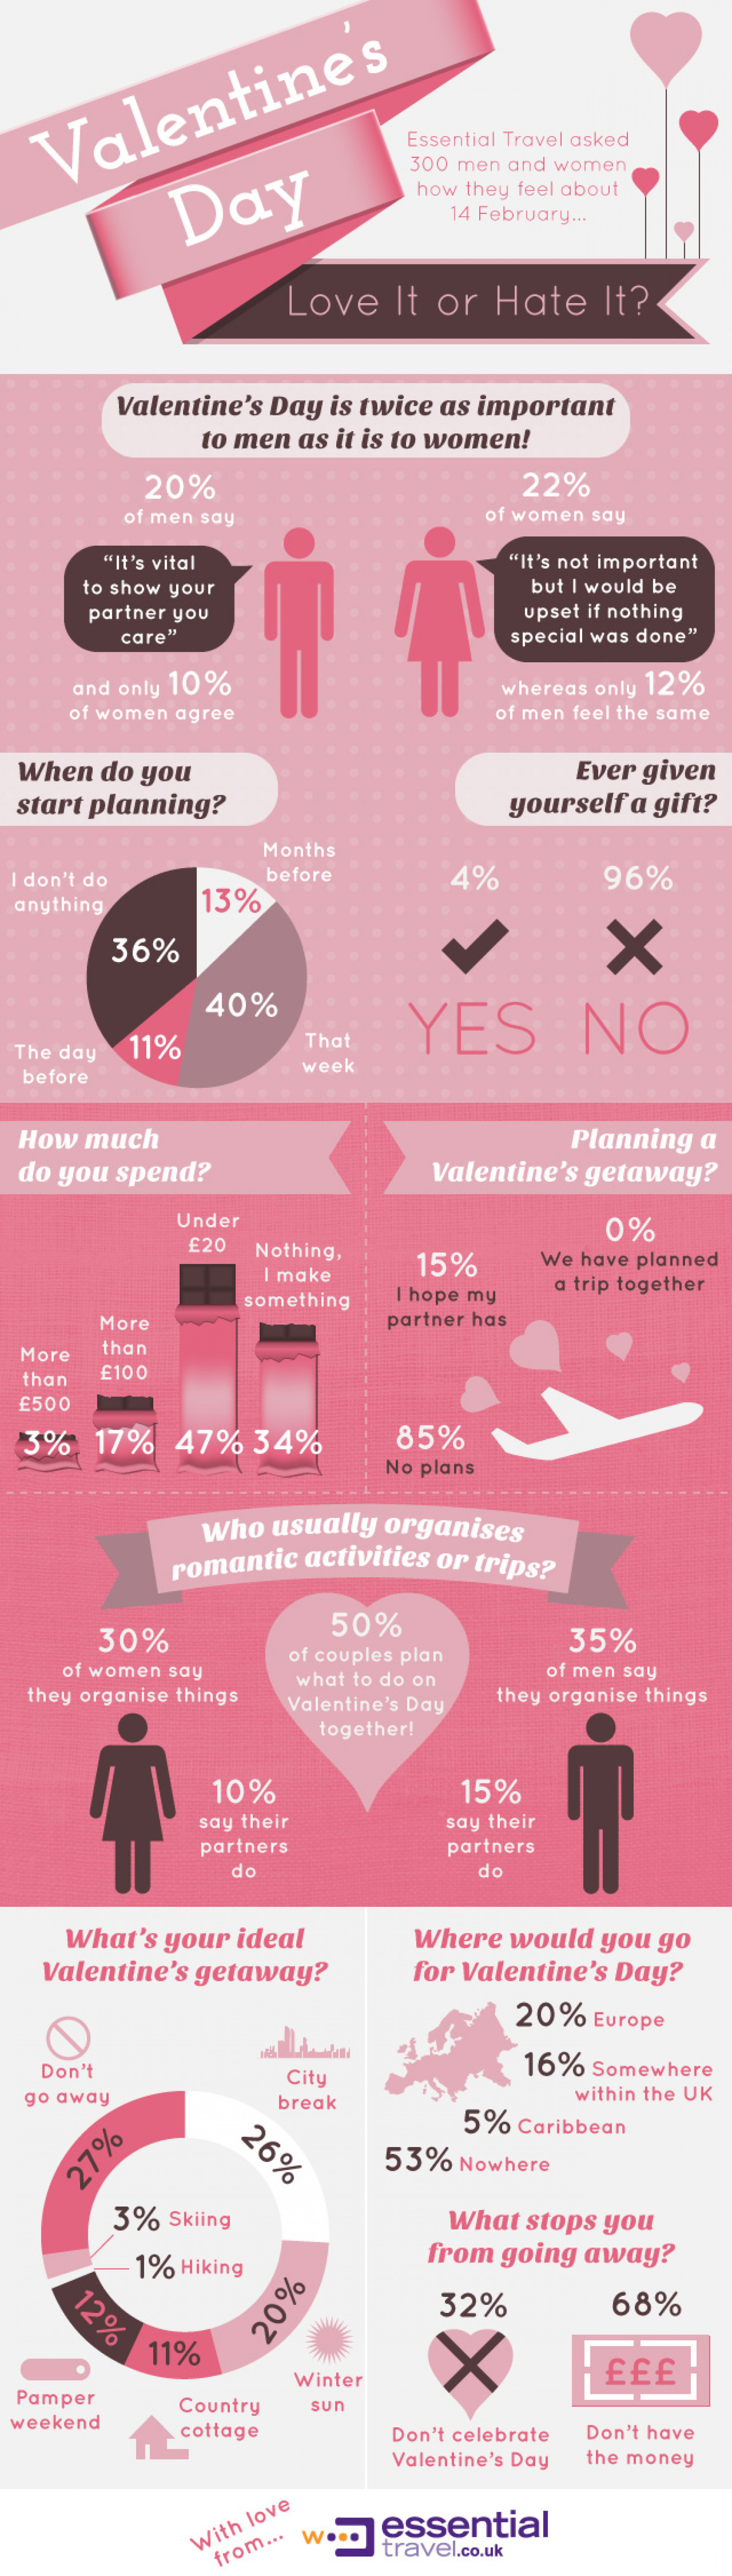 Valentine's Day - Love it or Hate it? Infographic